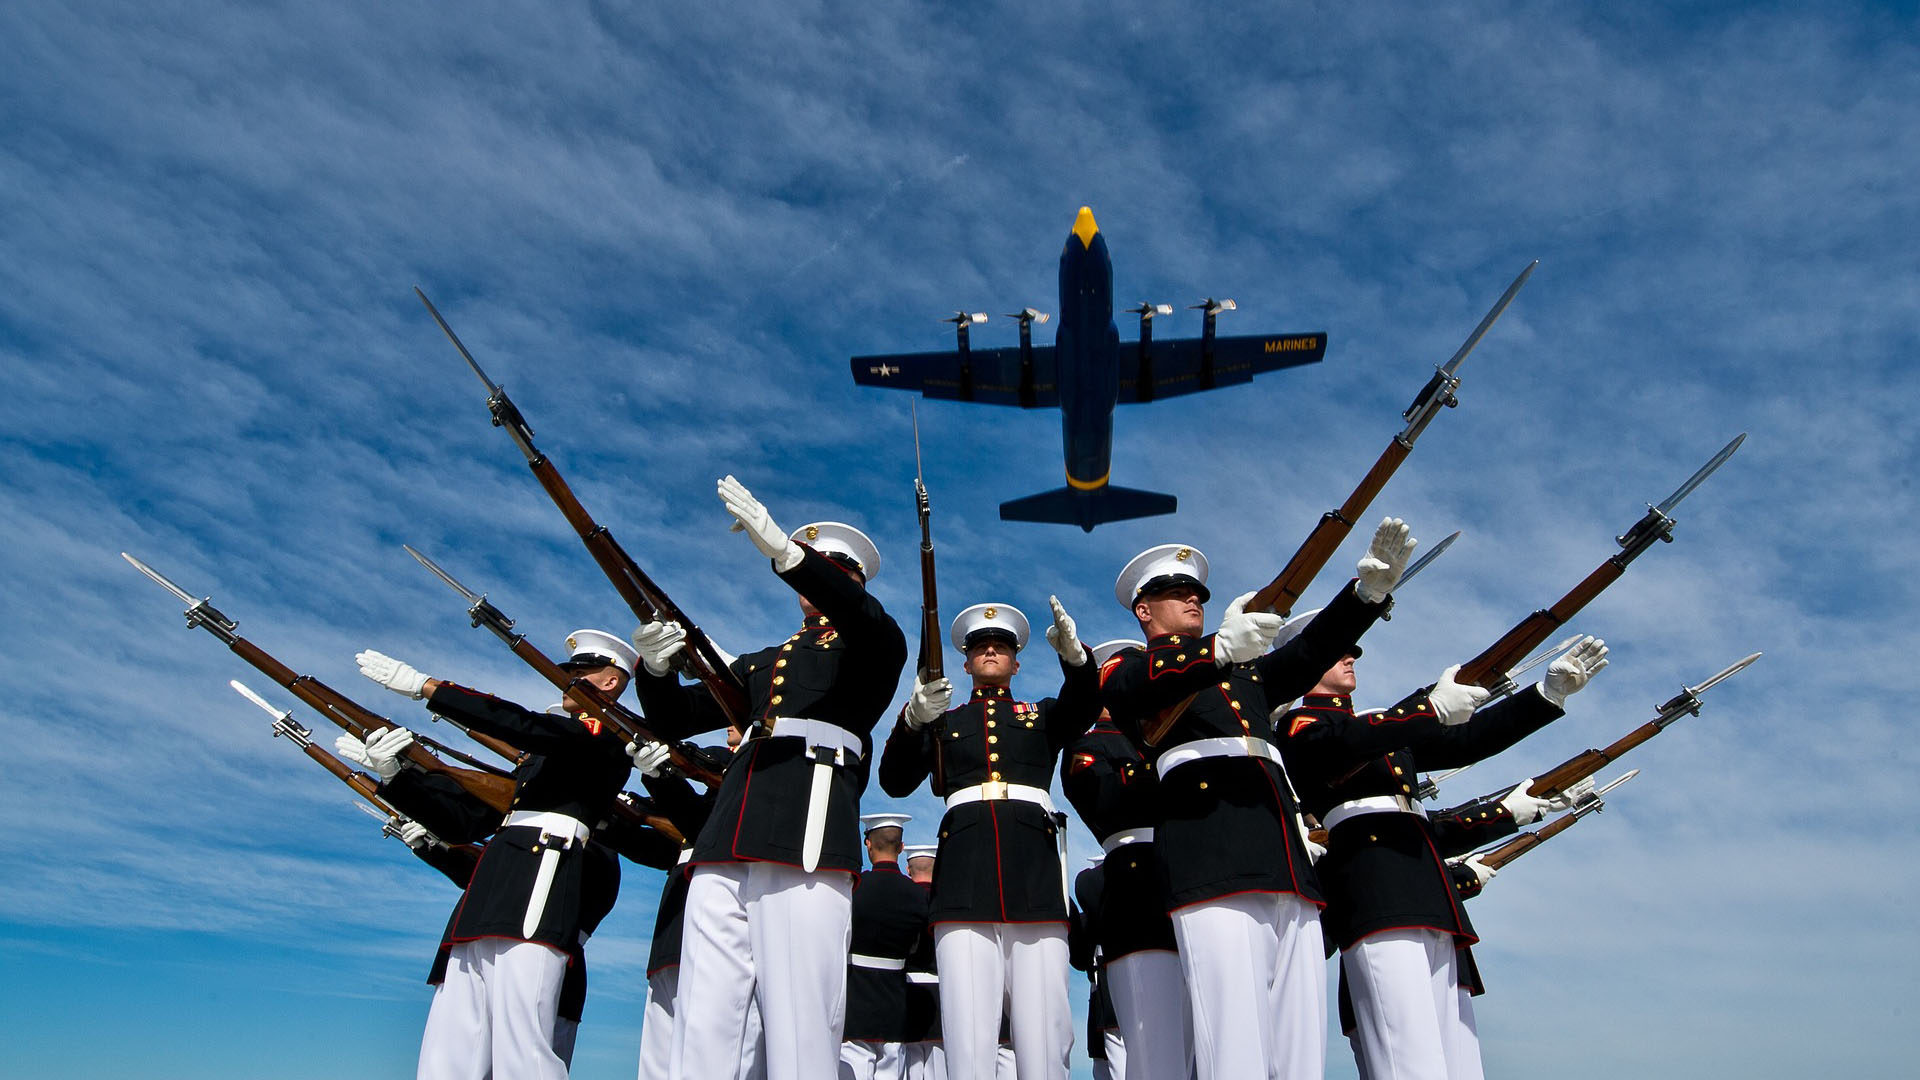 Marines stand at attention and salute with rifles while blue angels c-130 flies overhead during daytime